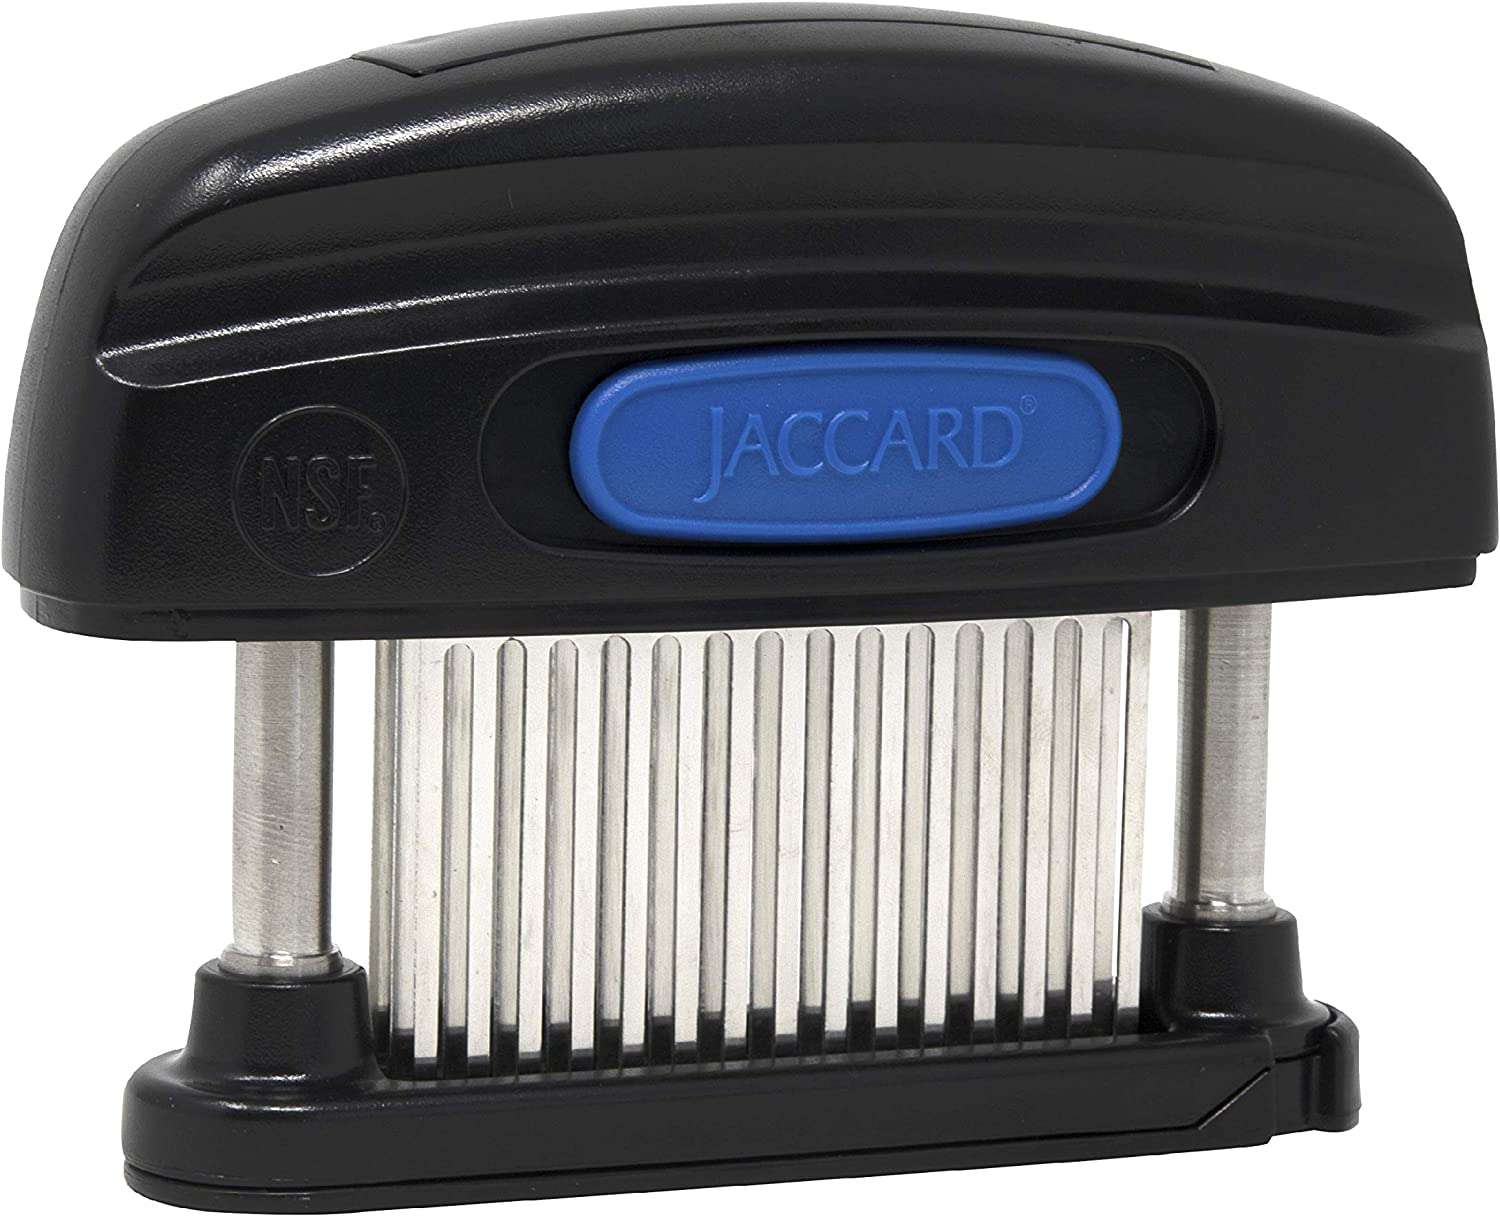 Jaccard Meat Maximizer Tenderizer